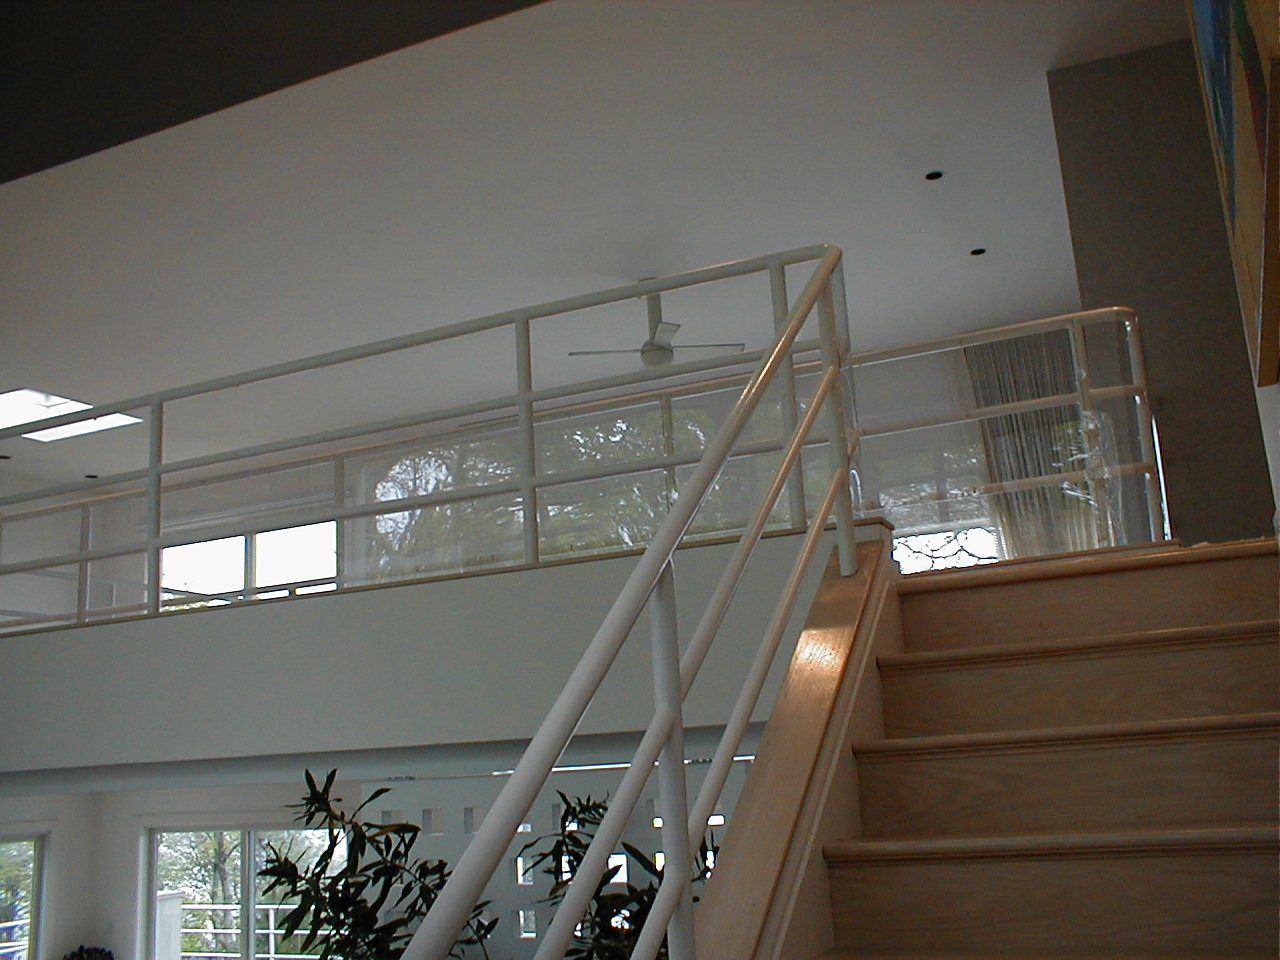 Plexiglass is used to protect wide gaps in railings, on